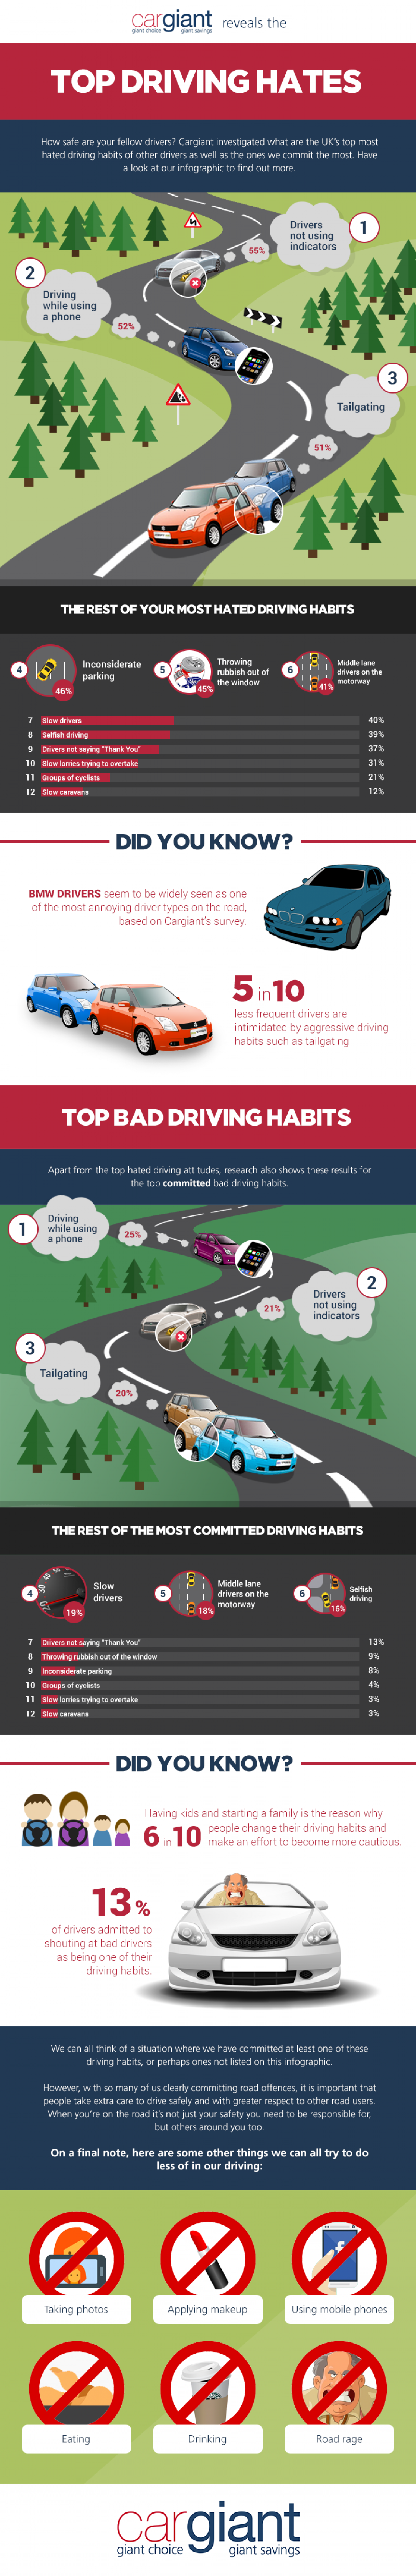 Cargiant Reveals the Top Driving Hates Infographic